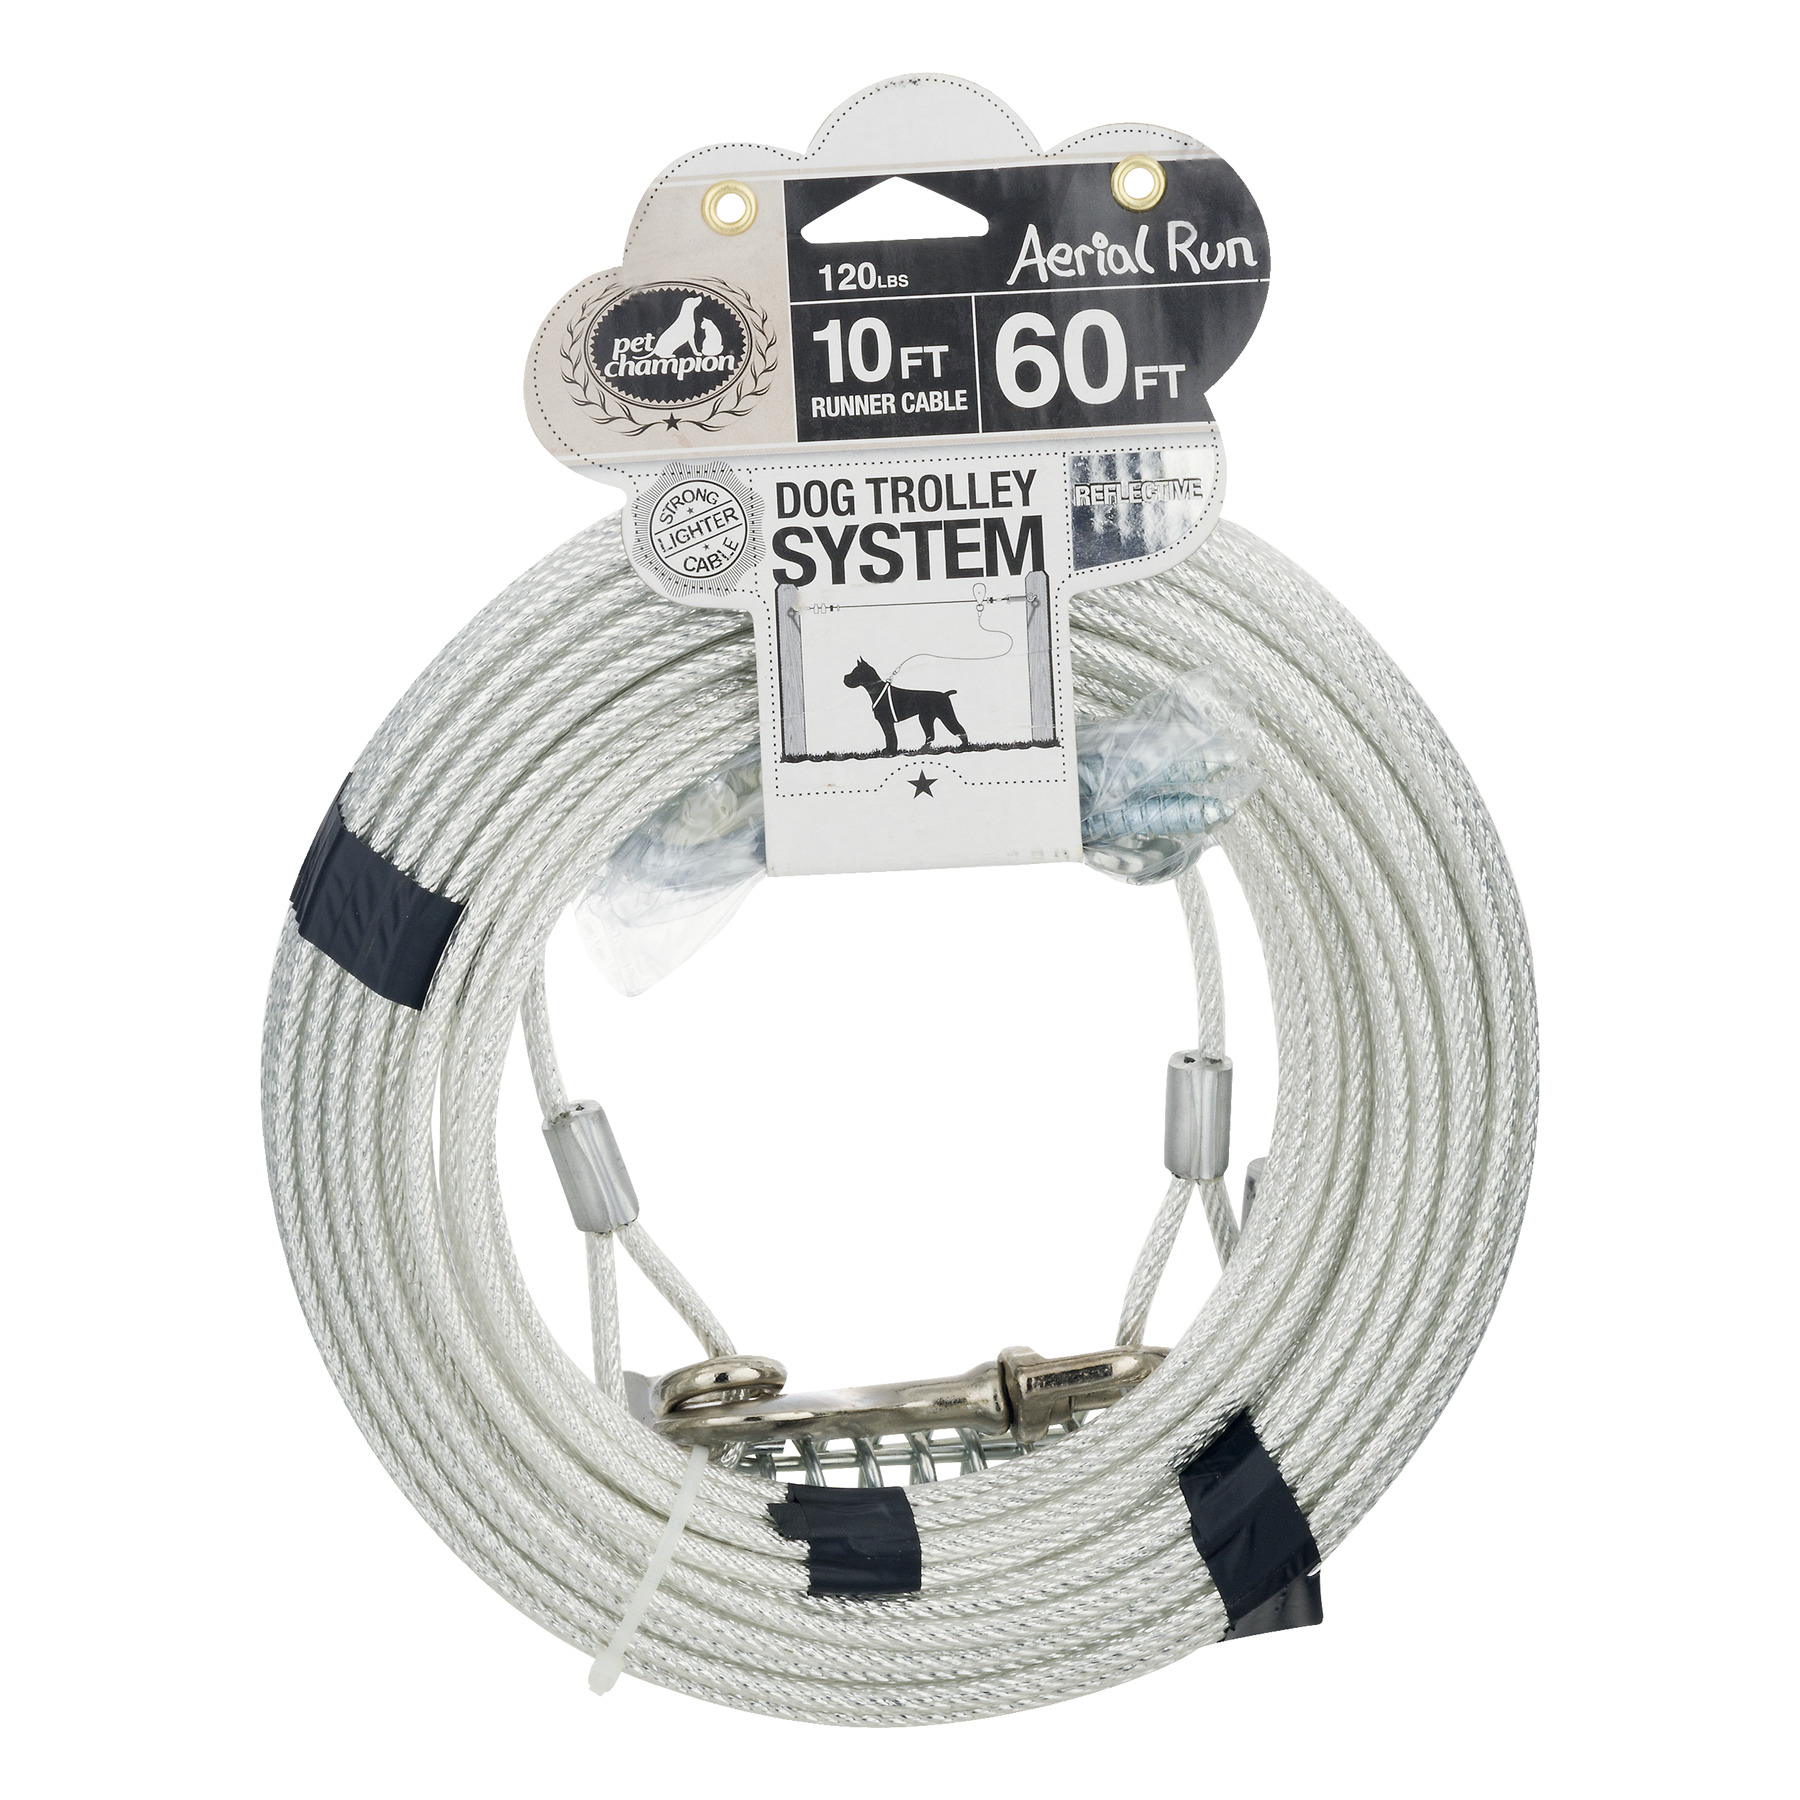 Pet Champion Aerial Run 10 ft Runner Cable